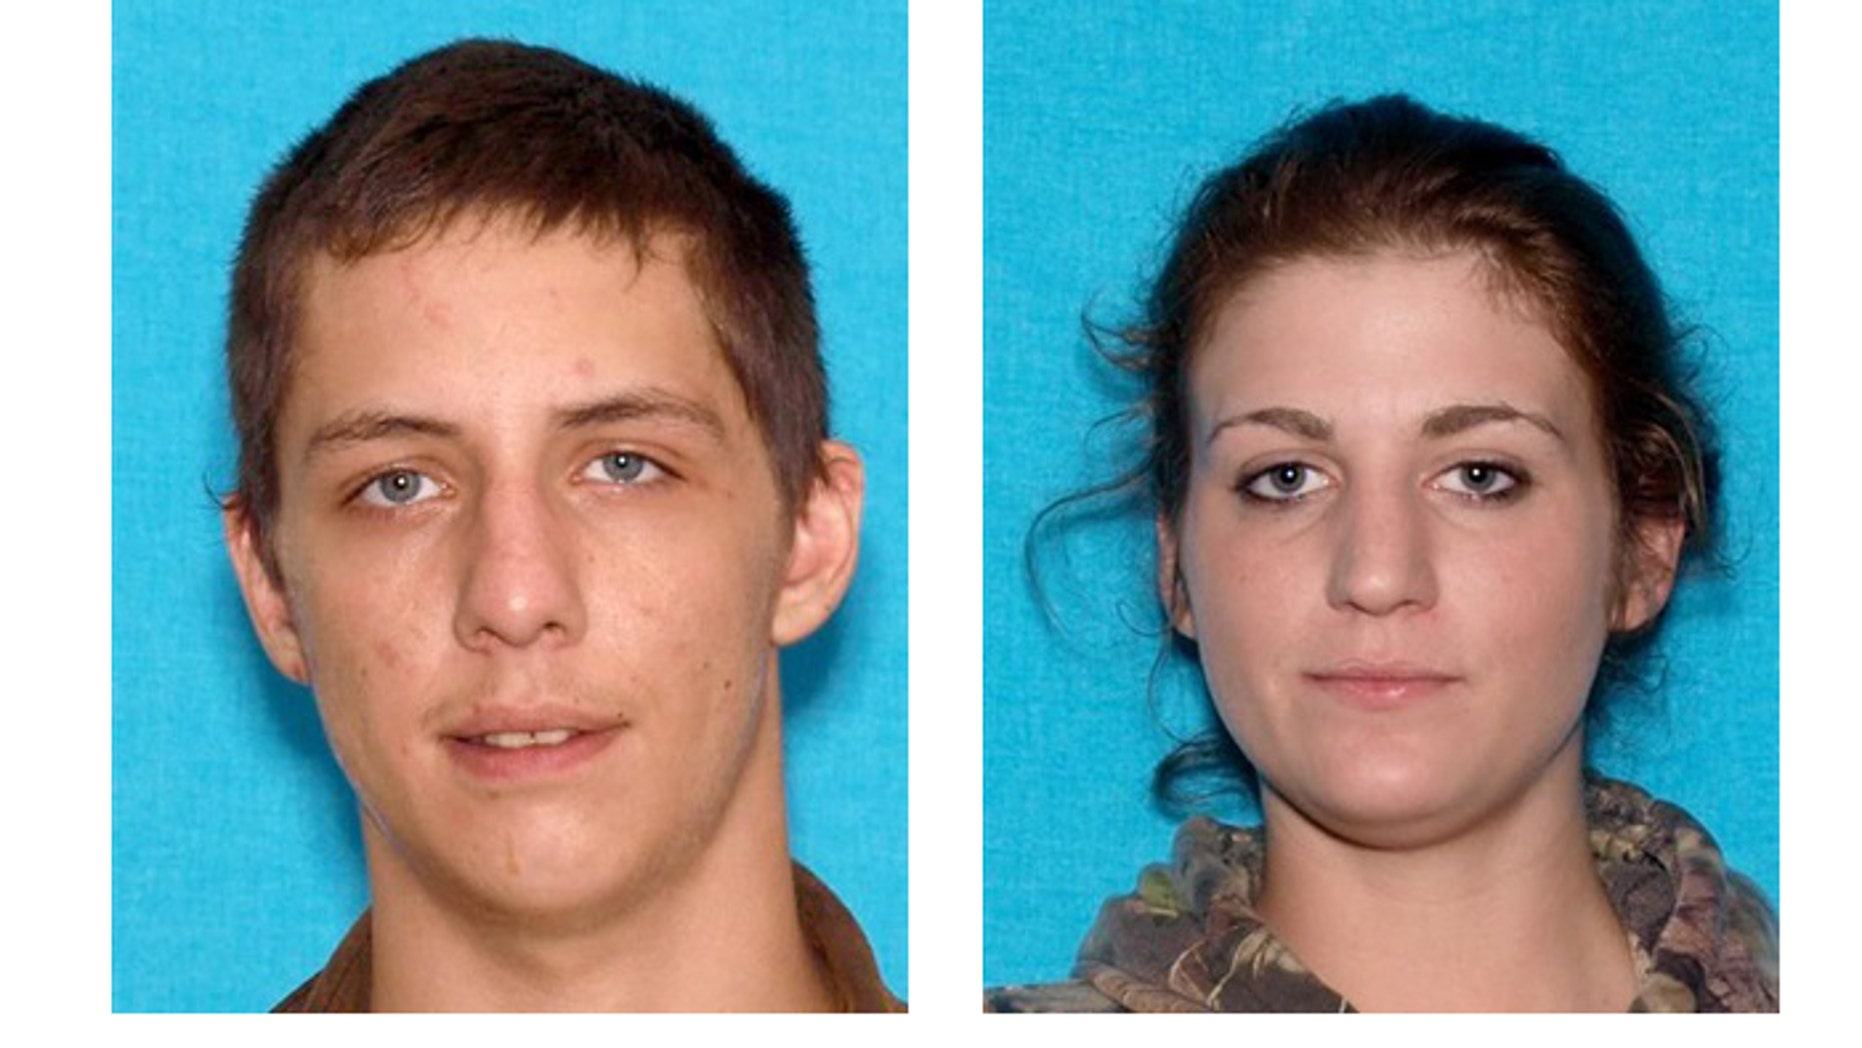 Jarret Cole Heitmann (l) and Makayla Danielle Stilwell are considered armed and dangerous.